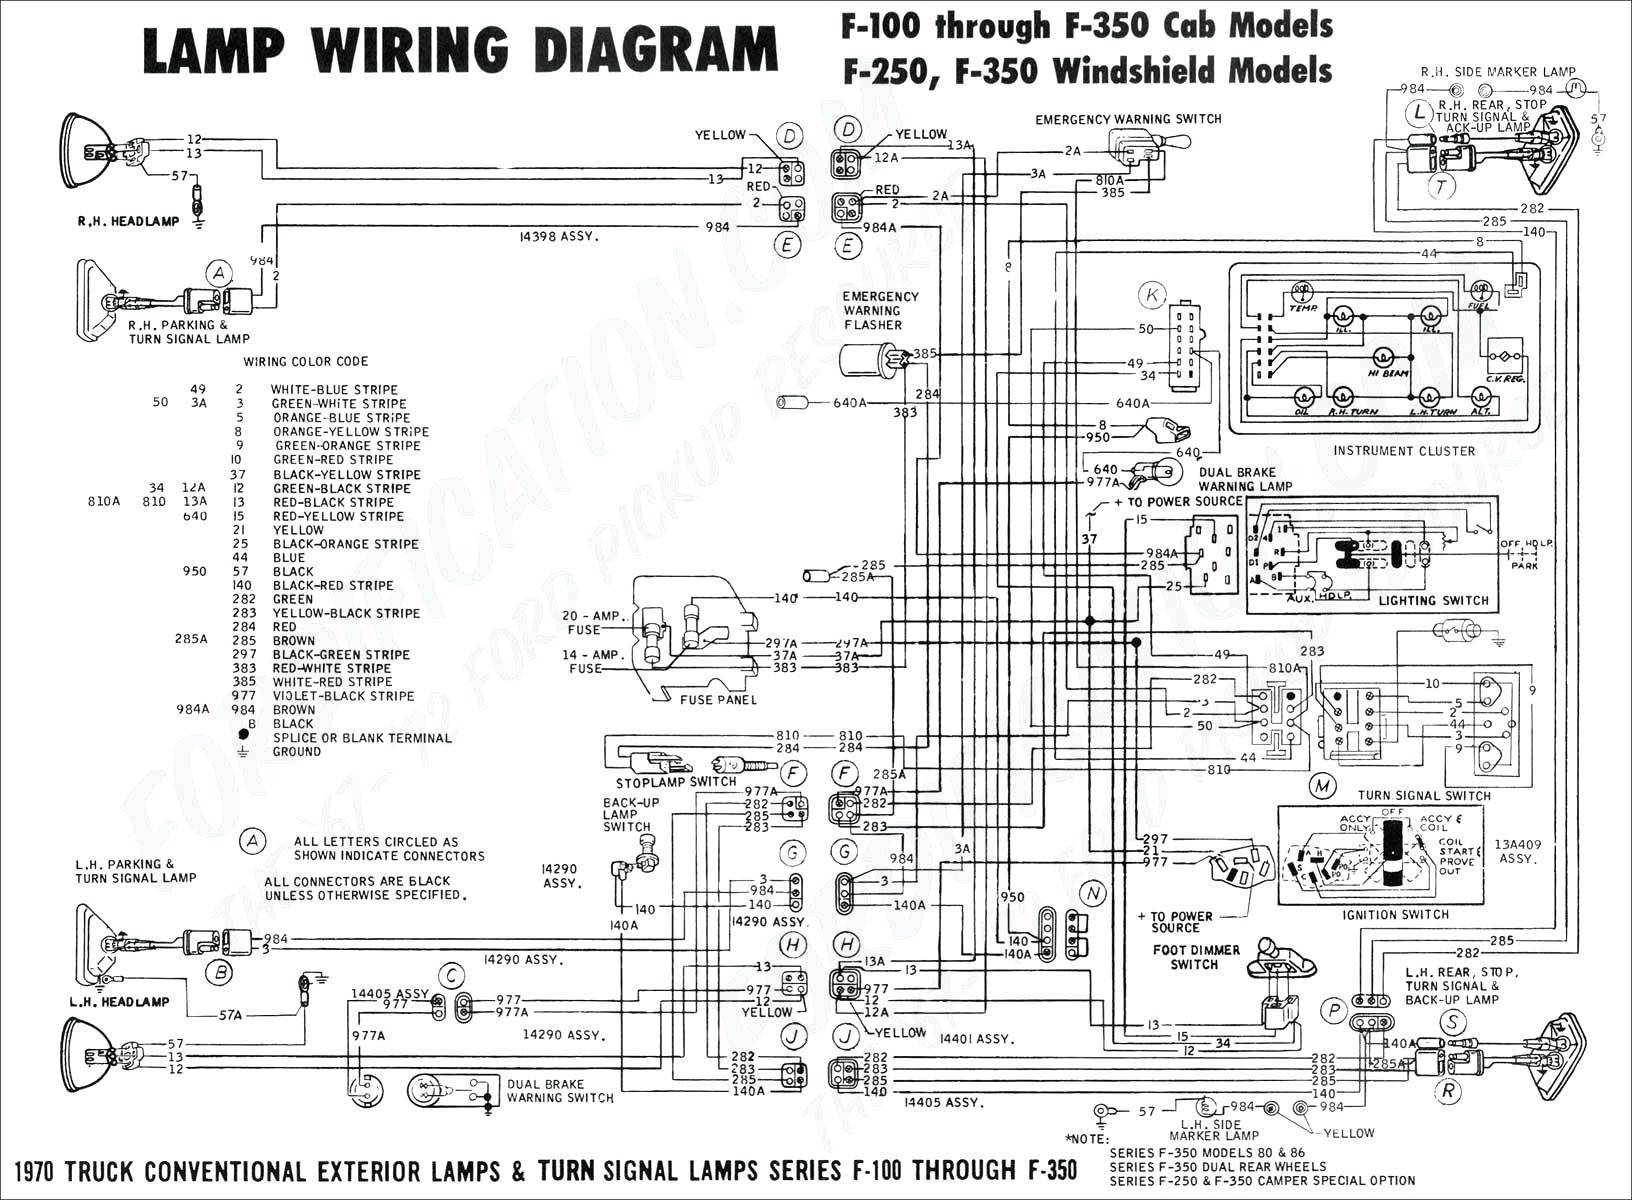 2000 Chevy Malibu Wiring Diagram Chevy Malibu Radio Wiring Diagram Of 2000 Chevy Malibu Wiring Diagram 2008 Silverado 2500hd Wiring Diagram